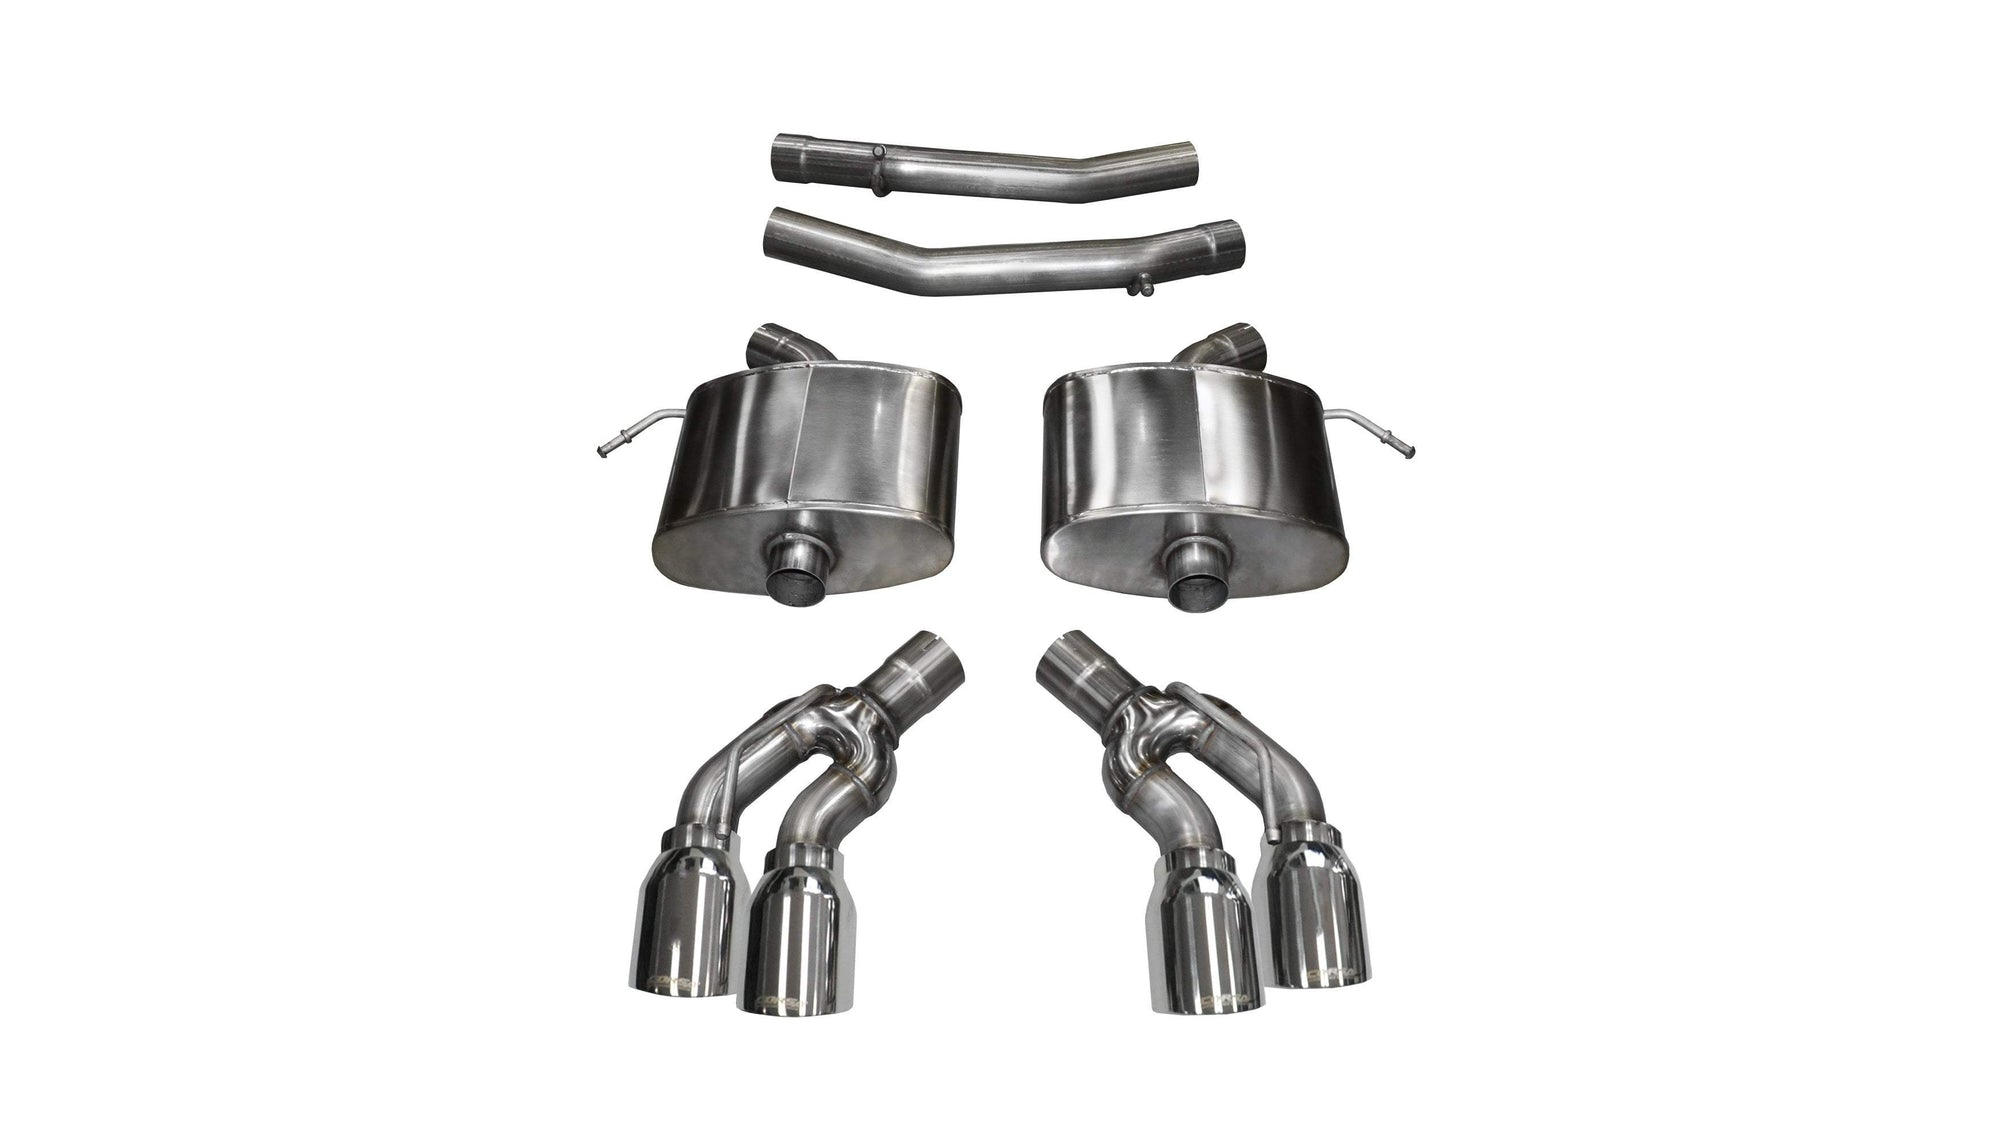 "CORSA PERFORMANCE Axle-Back Exhaust Polished / Sport / Dual Rear - Twin 4.0in 2016-2019 Cadillac CTS-V 6.2L V8, 2.75"" Dual Rear Exit Axle-Back Exhaust System with Twin 4.0"" Tips (14357) Sport Sound Level"